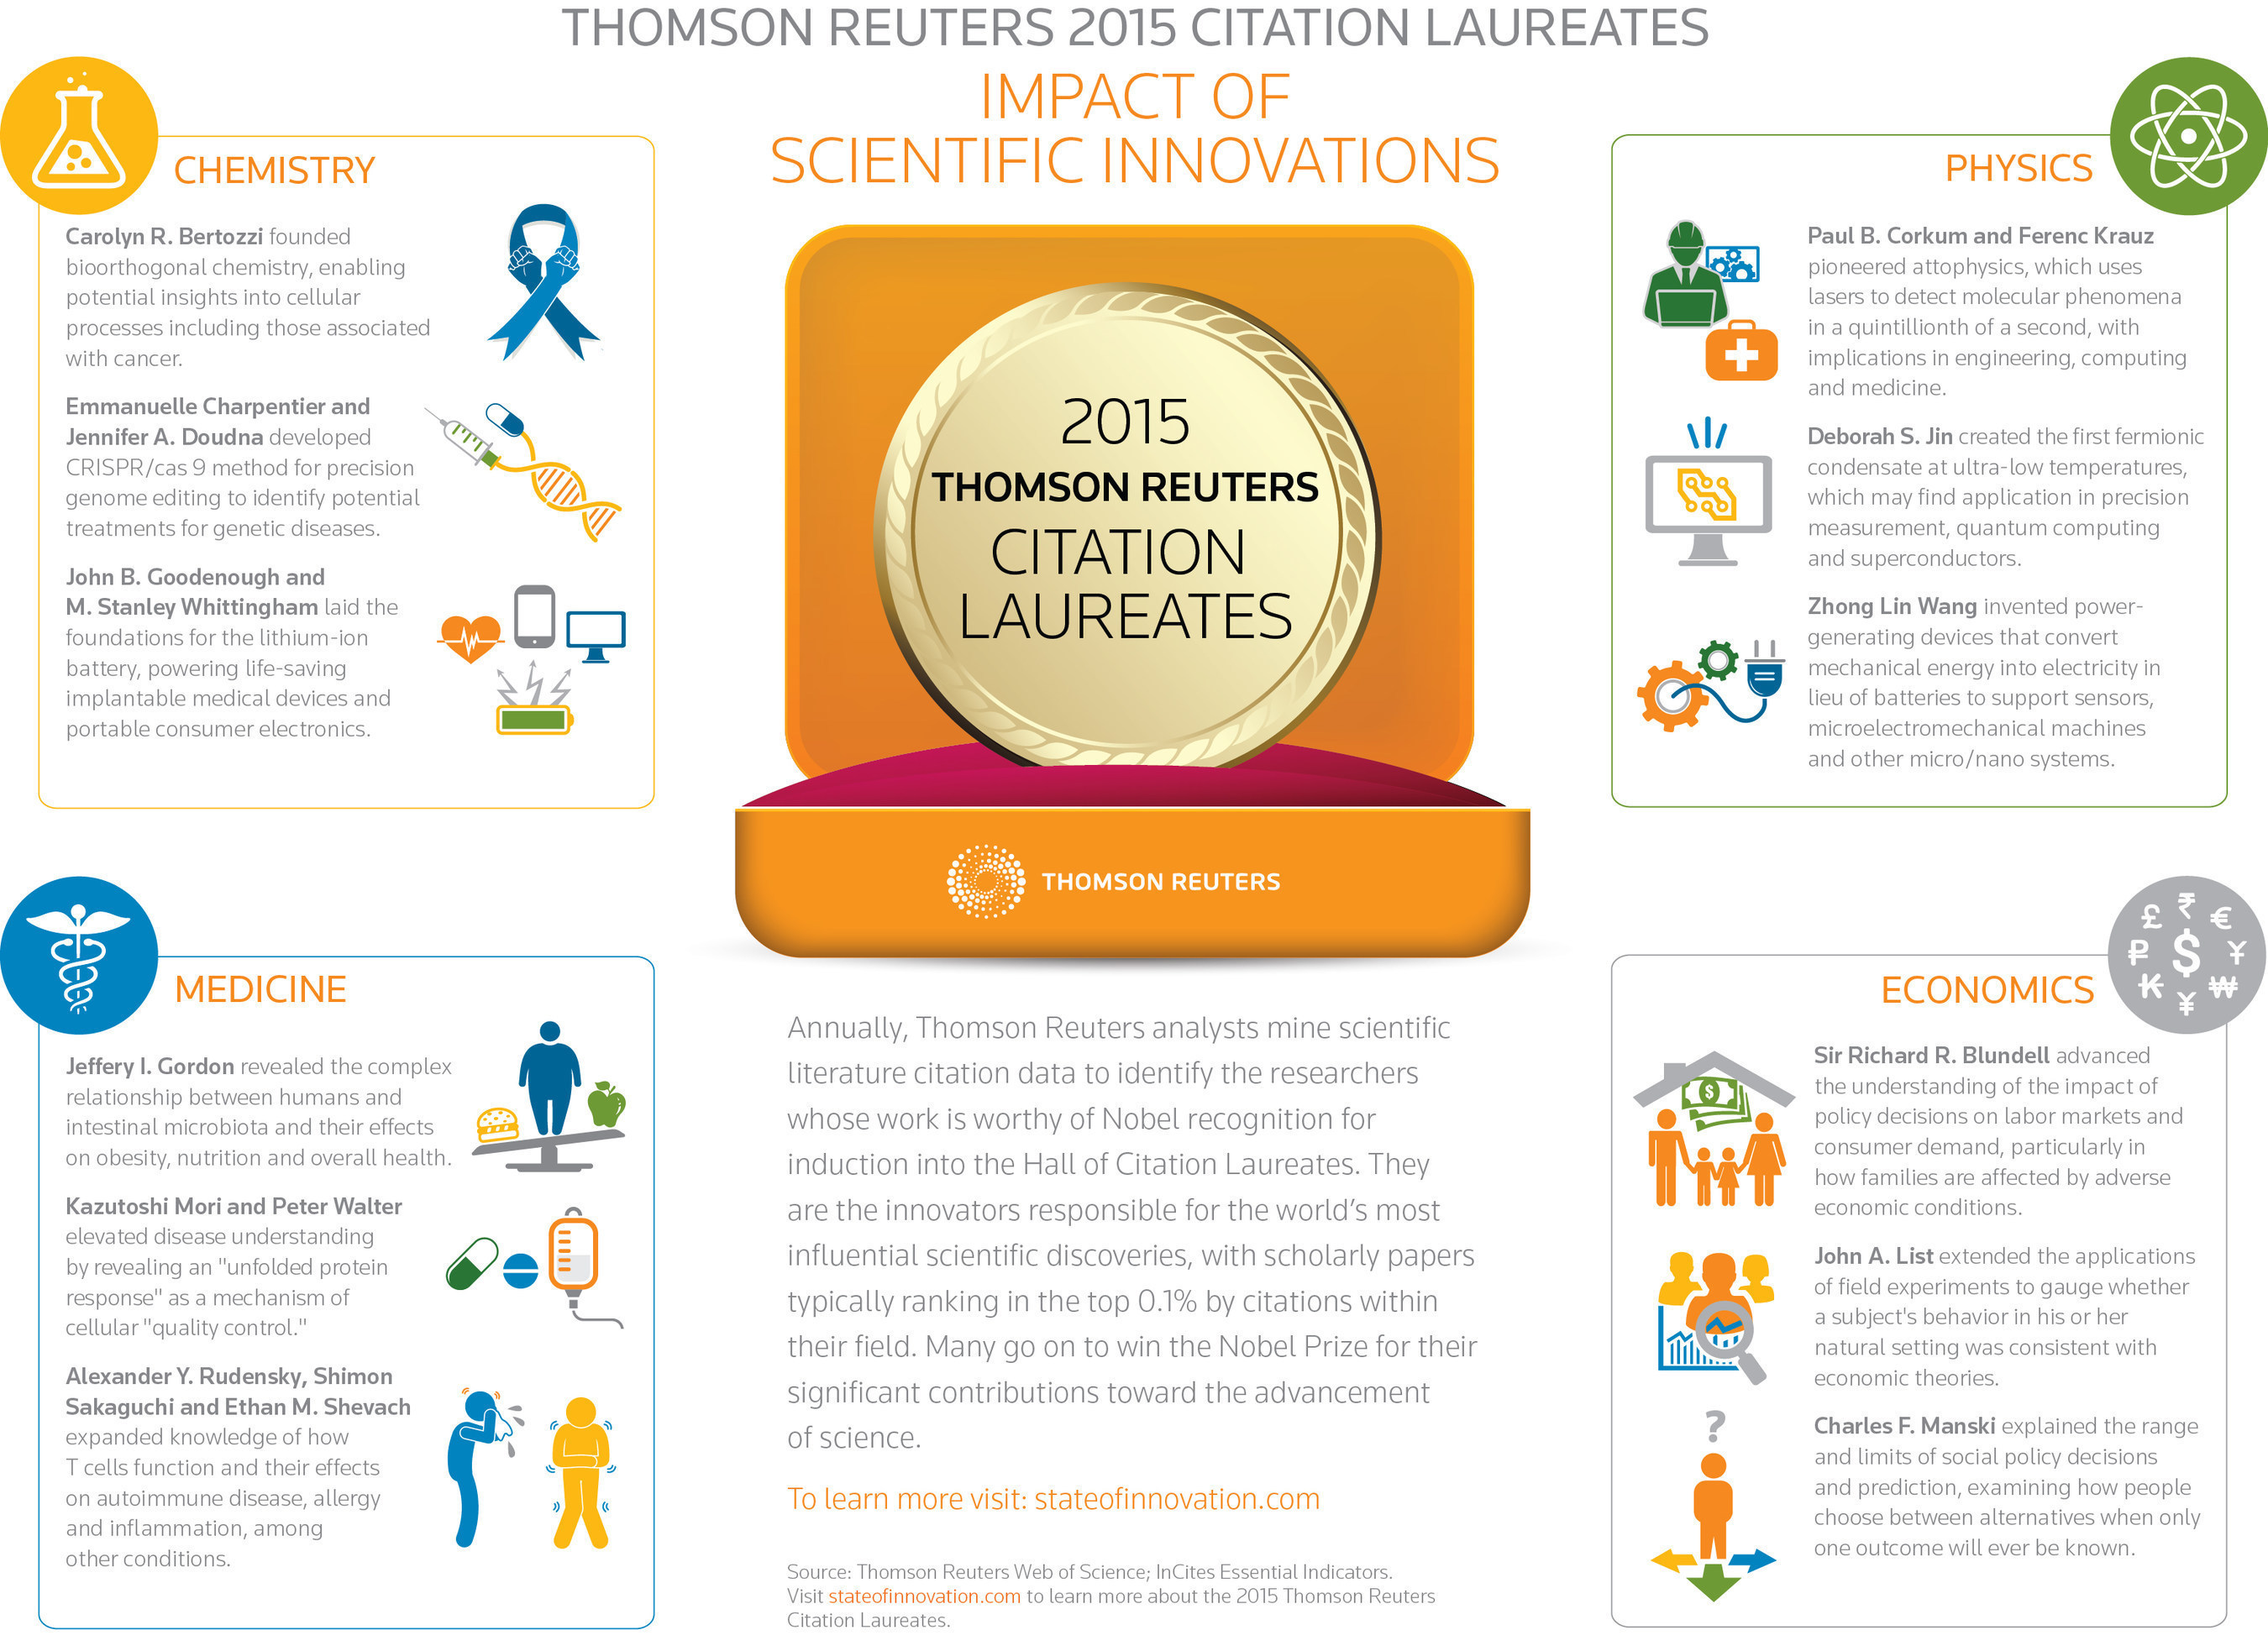 Thomson Reuters announces the 2015 Citation Laureates, candidates for Nobel Prizes this year. Go to ...